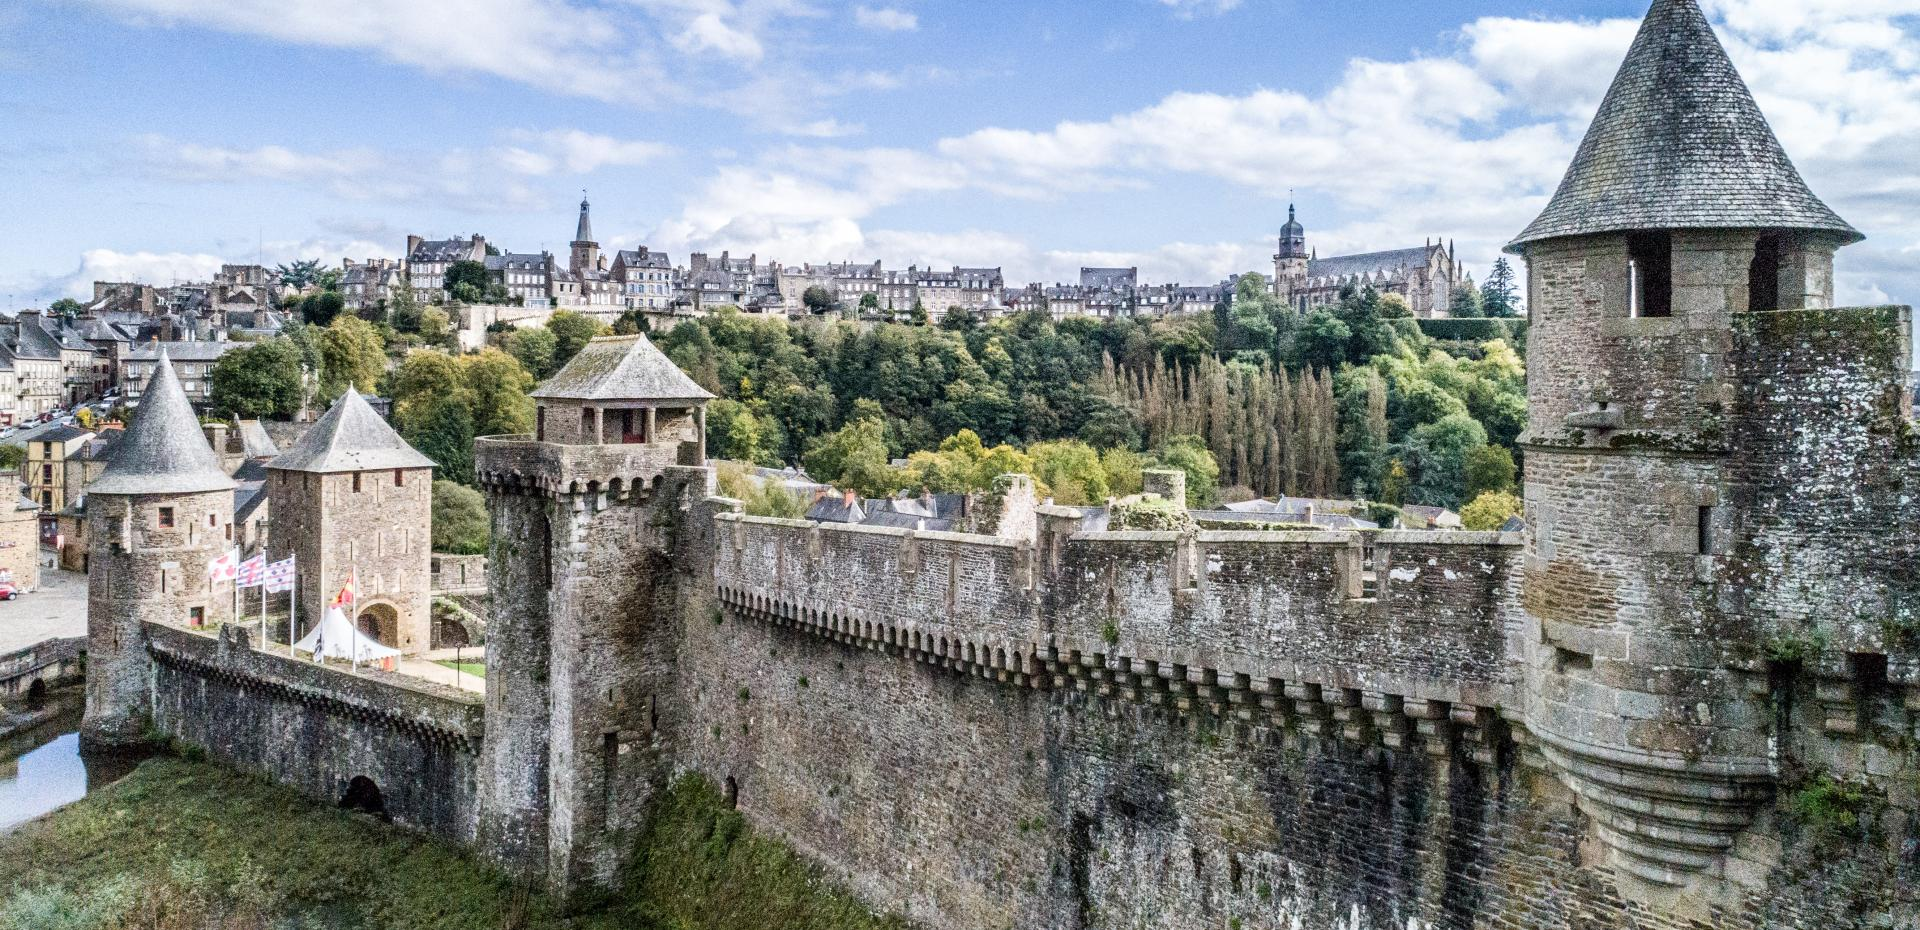 Most Instagrammable Castles in Europe